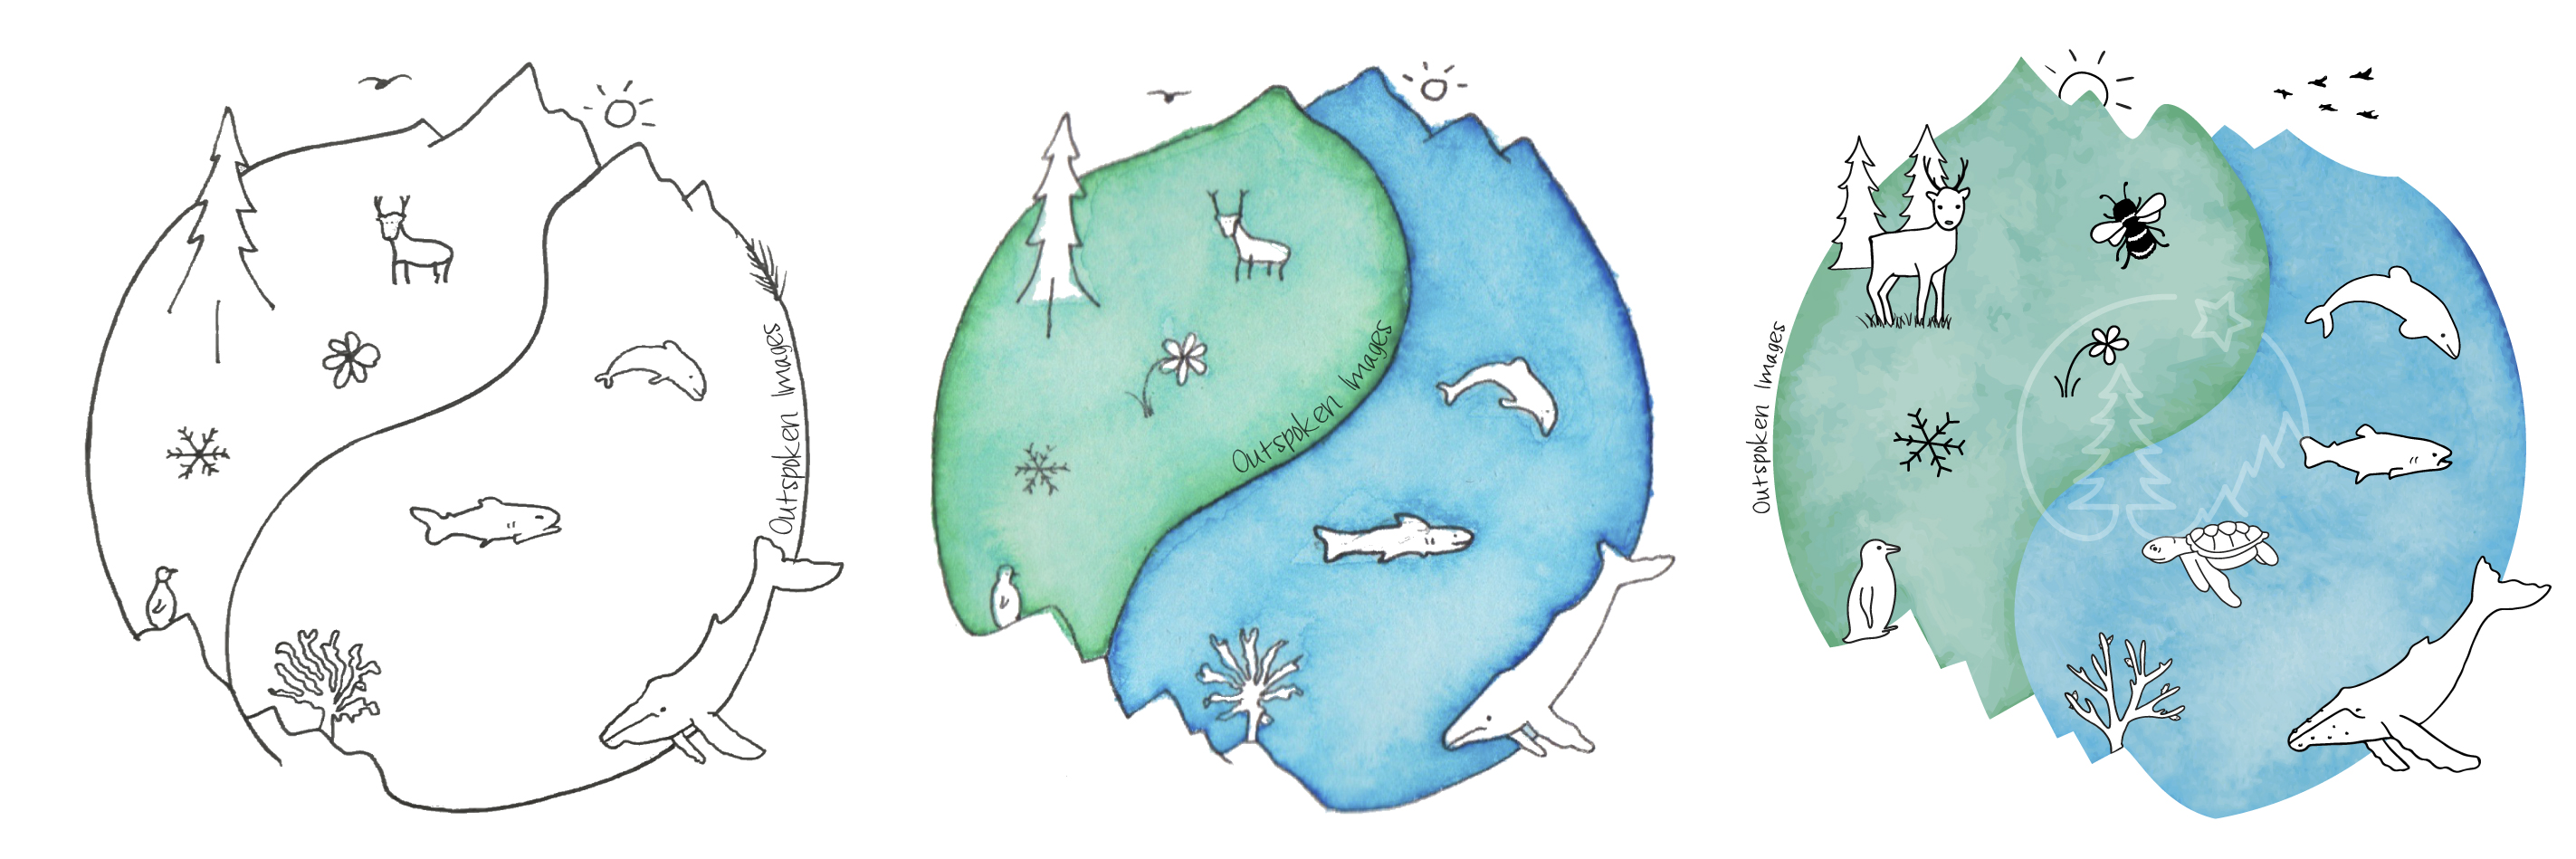 Harmony, a watercolour illustration: Globe with animals and plants ©2021 Outspoken Images by Marie Warner Preston